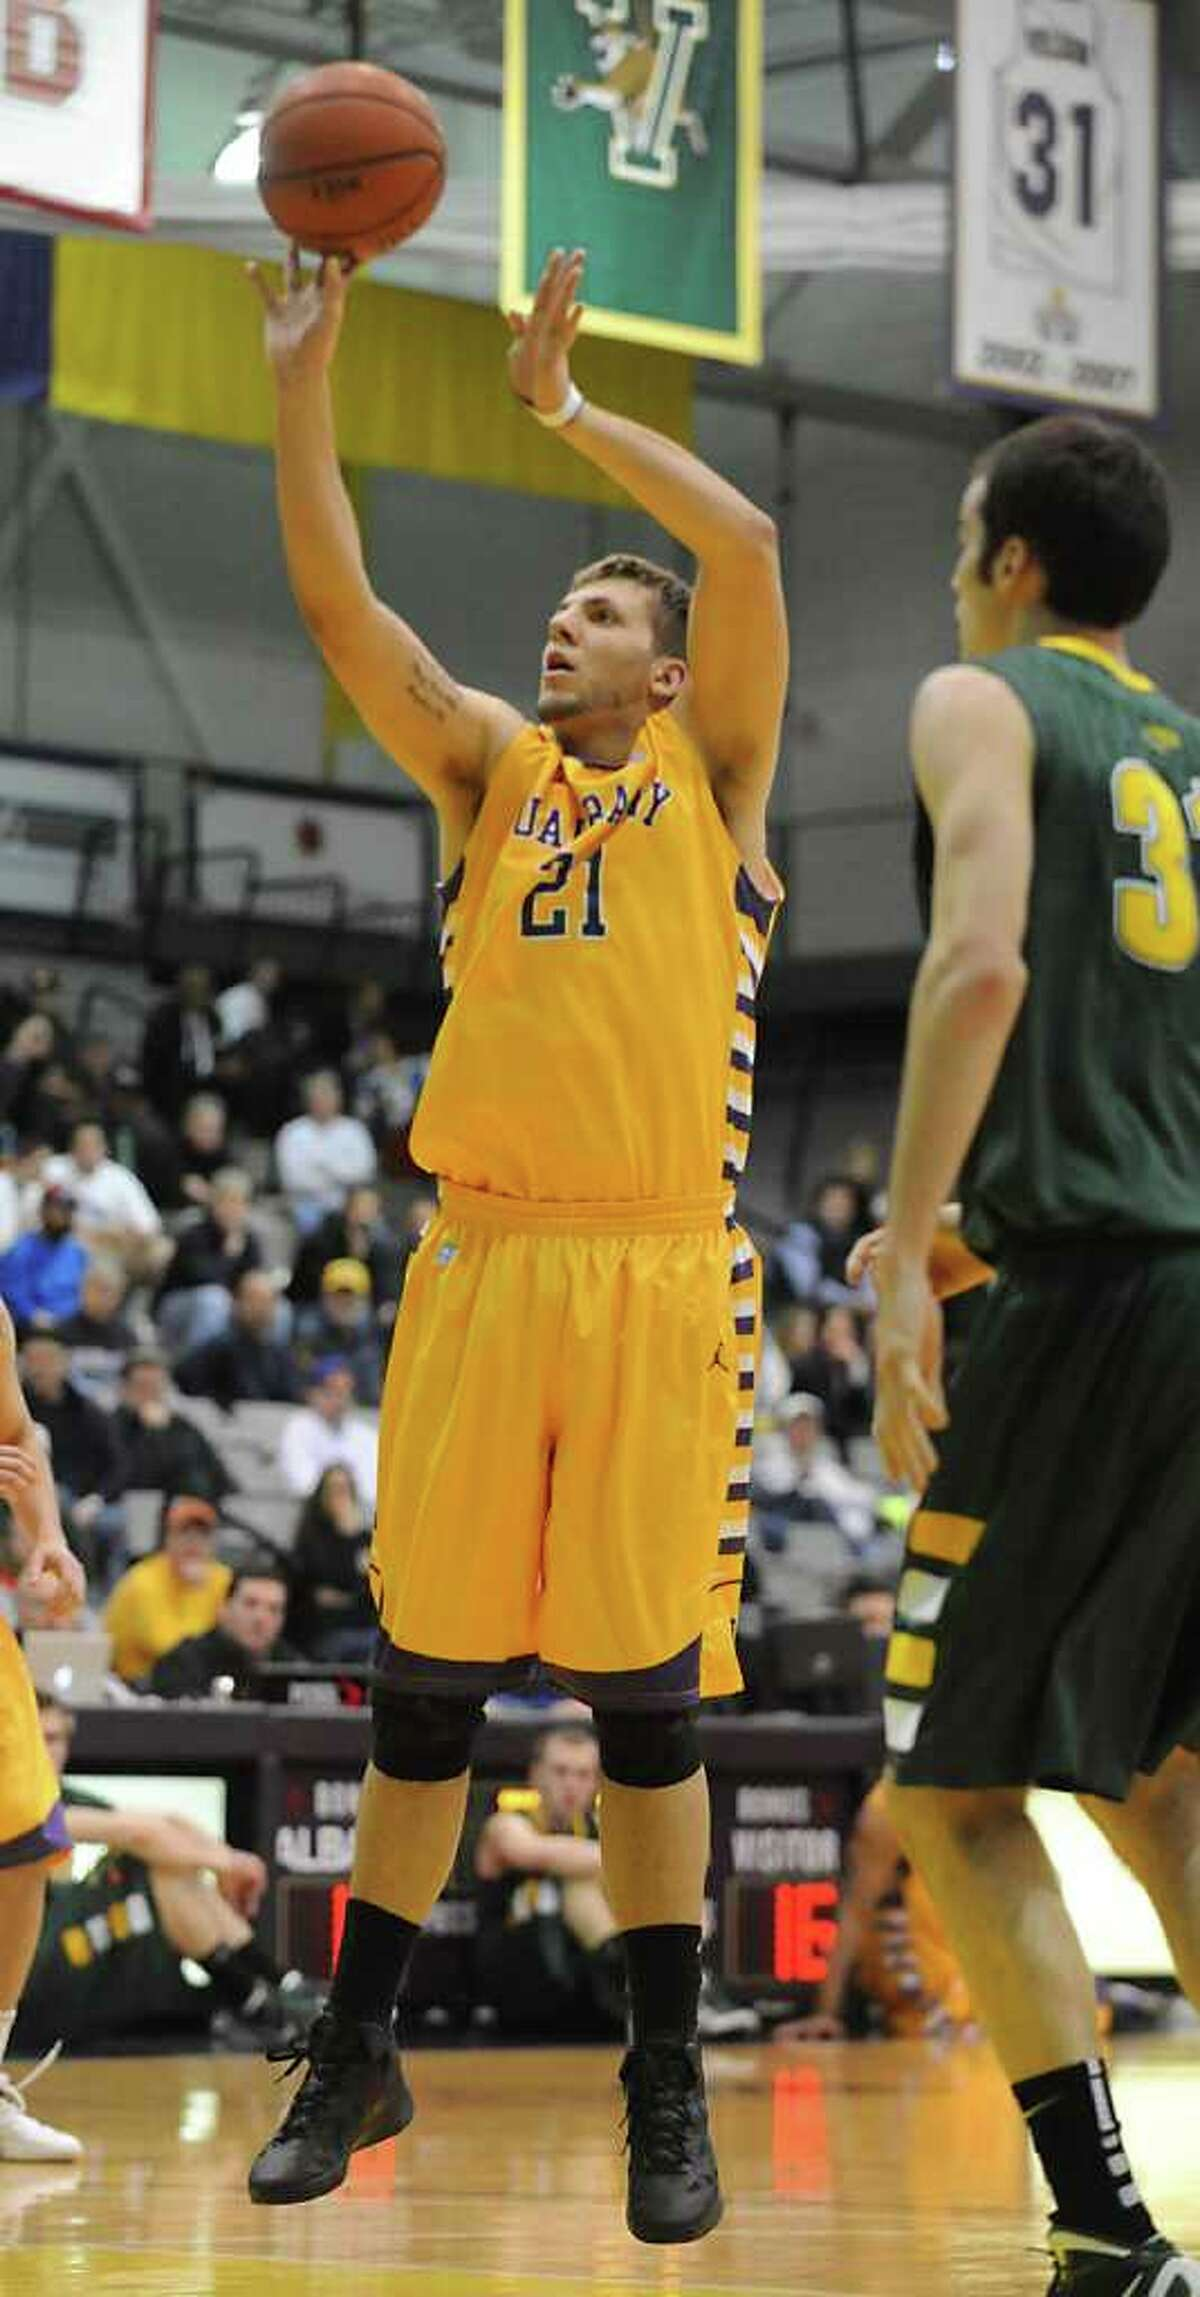 UAlbany's Blake Metcalf shoots a jump shot during a basketball game against Vermont at SEFCU arena on Wednesday, Feb. 15, 2012 in Albany, N.Y. (Lori Van Buren / Times Union)